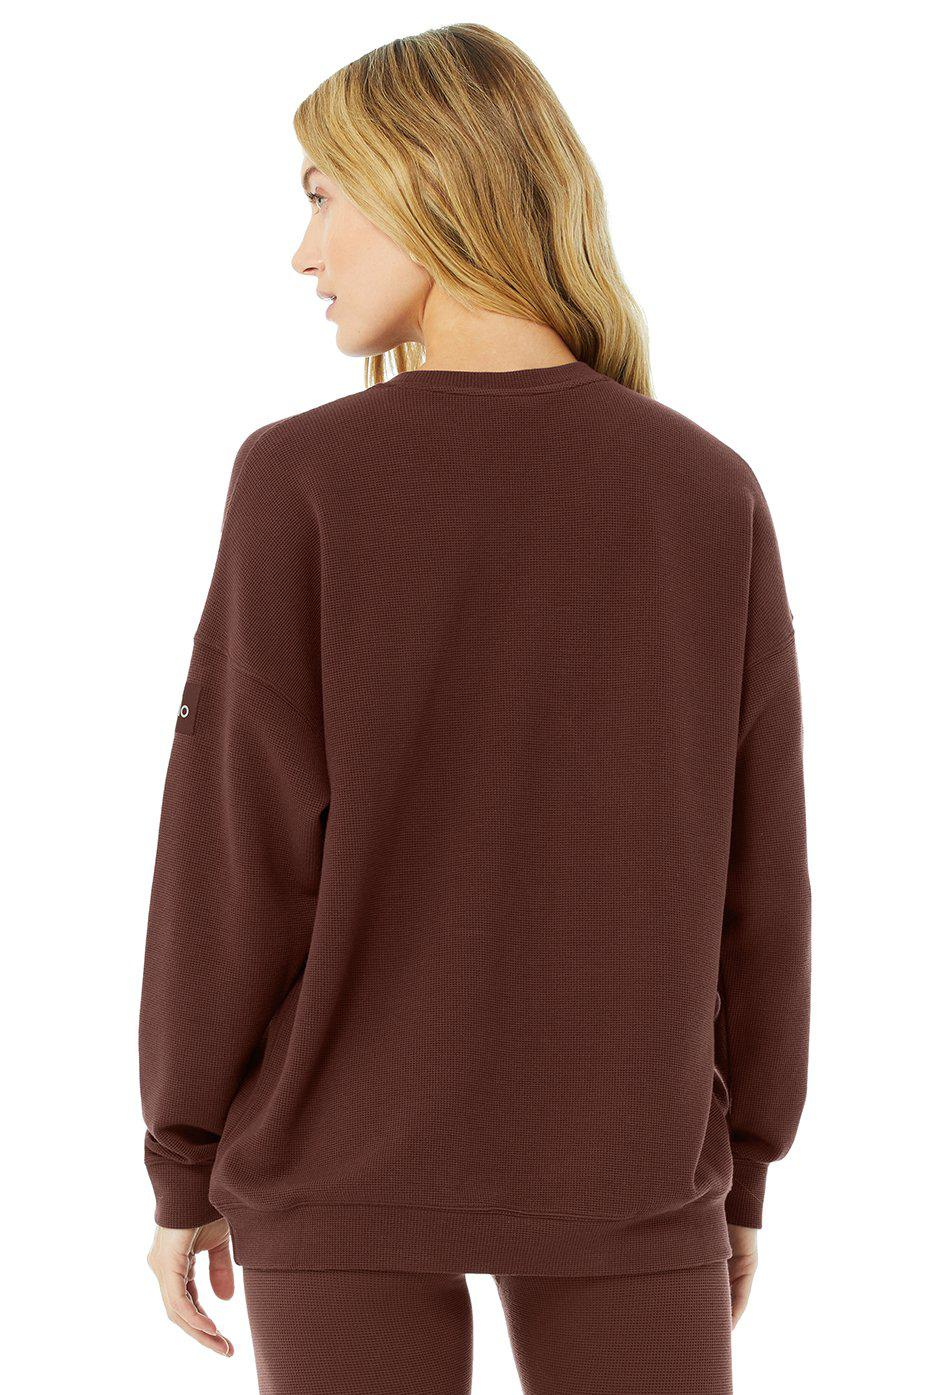 Micro Waffle Relaxation Pullover - Cherry Cola 2